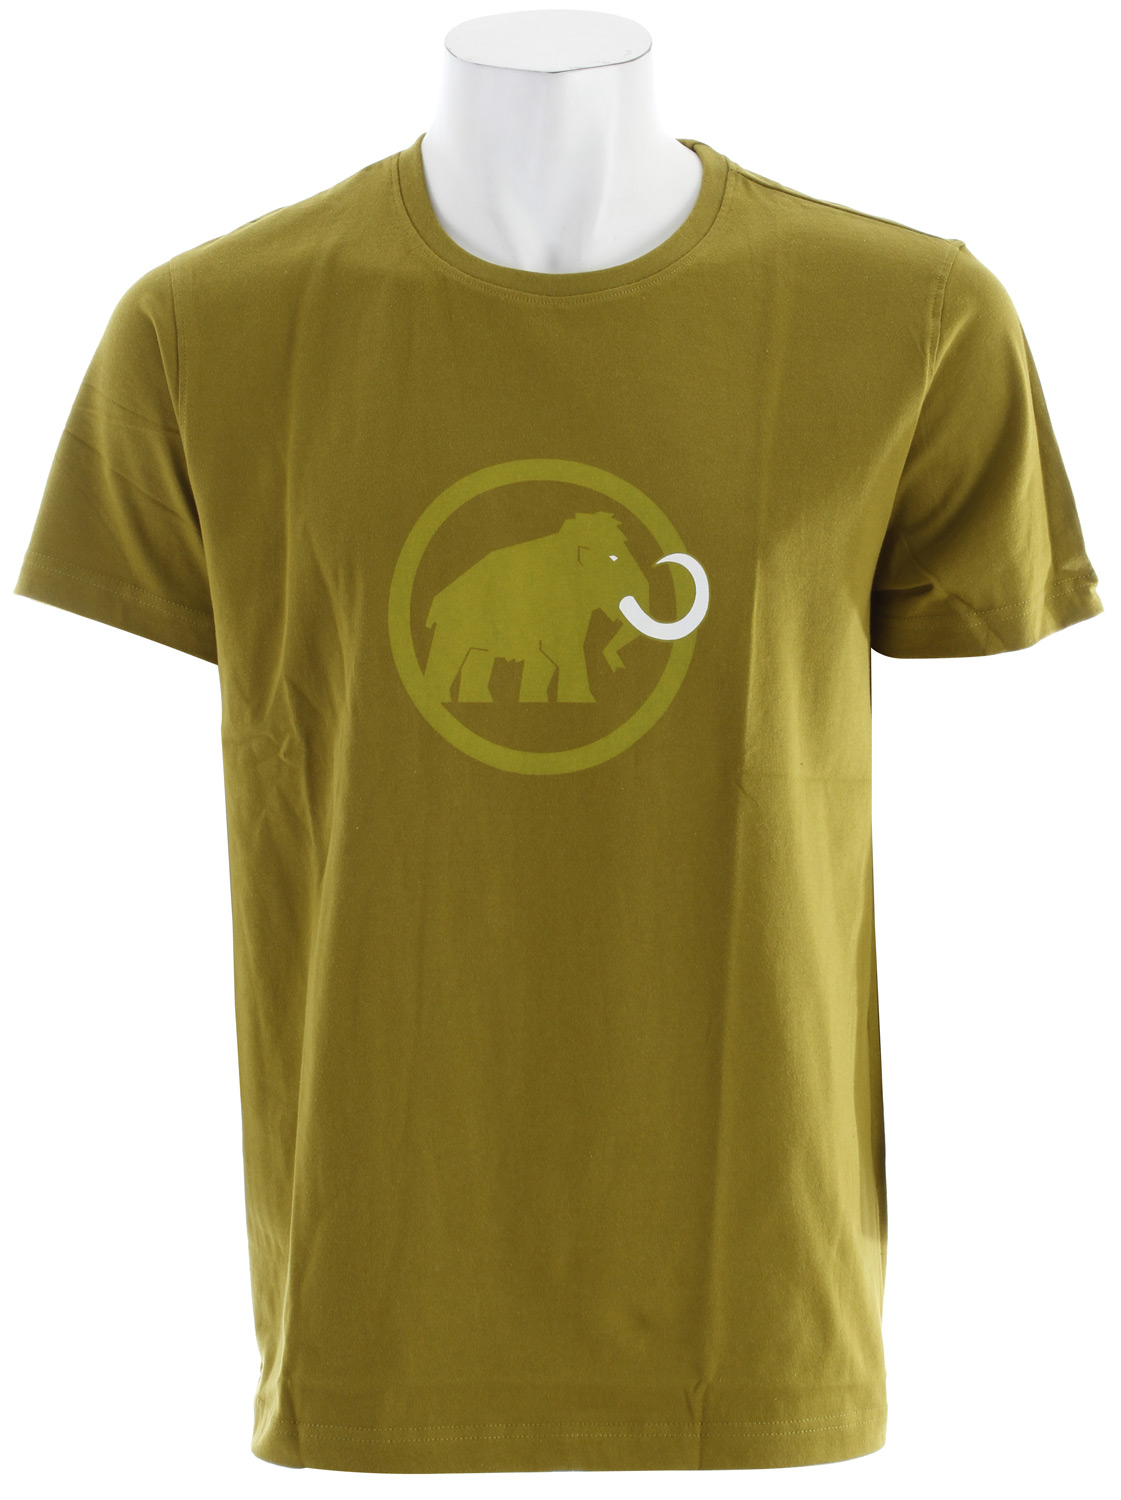 Camp and Hike The famous Mammut logo T-shirt, now available in bioRe organic cotton. bioRe stands for: 1. Organic: produced according to organic criteria; 2. Quality: high-quality materials and workmanship; 3. Ecological: no use of harmful substances or heavy metals; 4. Transparency: control over all production stages throughout the entire value chain; 5. Fairness: humane production conditions throughout the entire value chainKey Features of the Mammut Logo T-Shirt: The famous Mammut logo T-shirt Available in small sizes bioRe® Organic Cotton Ultraviolet Protection Factor (UPF) 40+ Optimally suitable for: Sportsclimbing, Gym Climbing, Bouldering / Urban Climbing Suitable for: Multipitch Rockclimbing, Walking, Via Ferrata, Travel, Mountain Hiking - $34.95